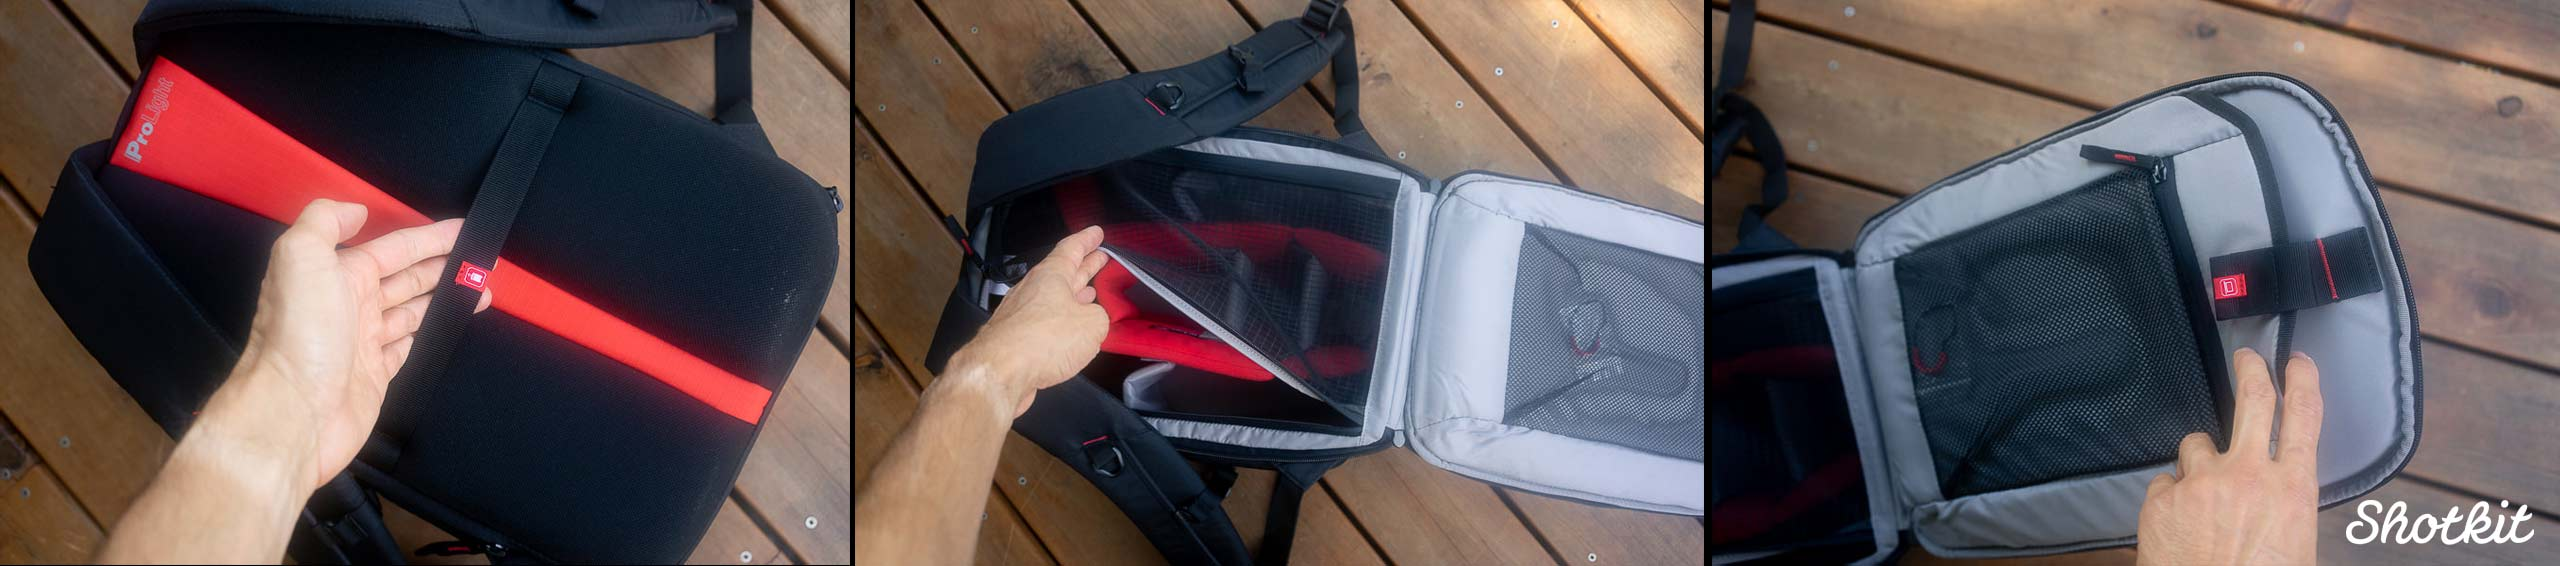 What the Manfrotto Redbee Camera Bag holds inside